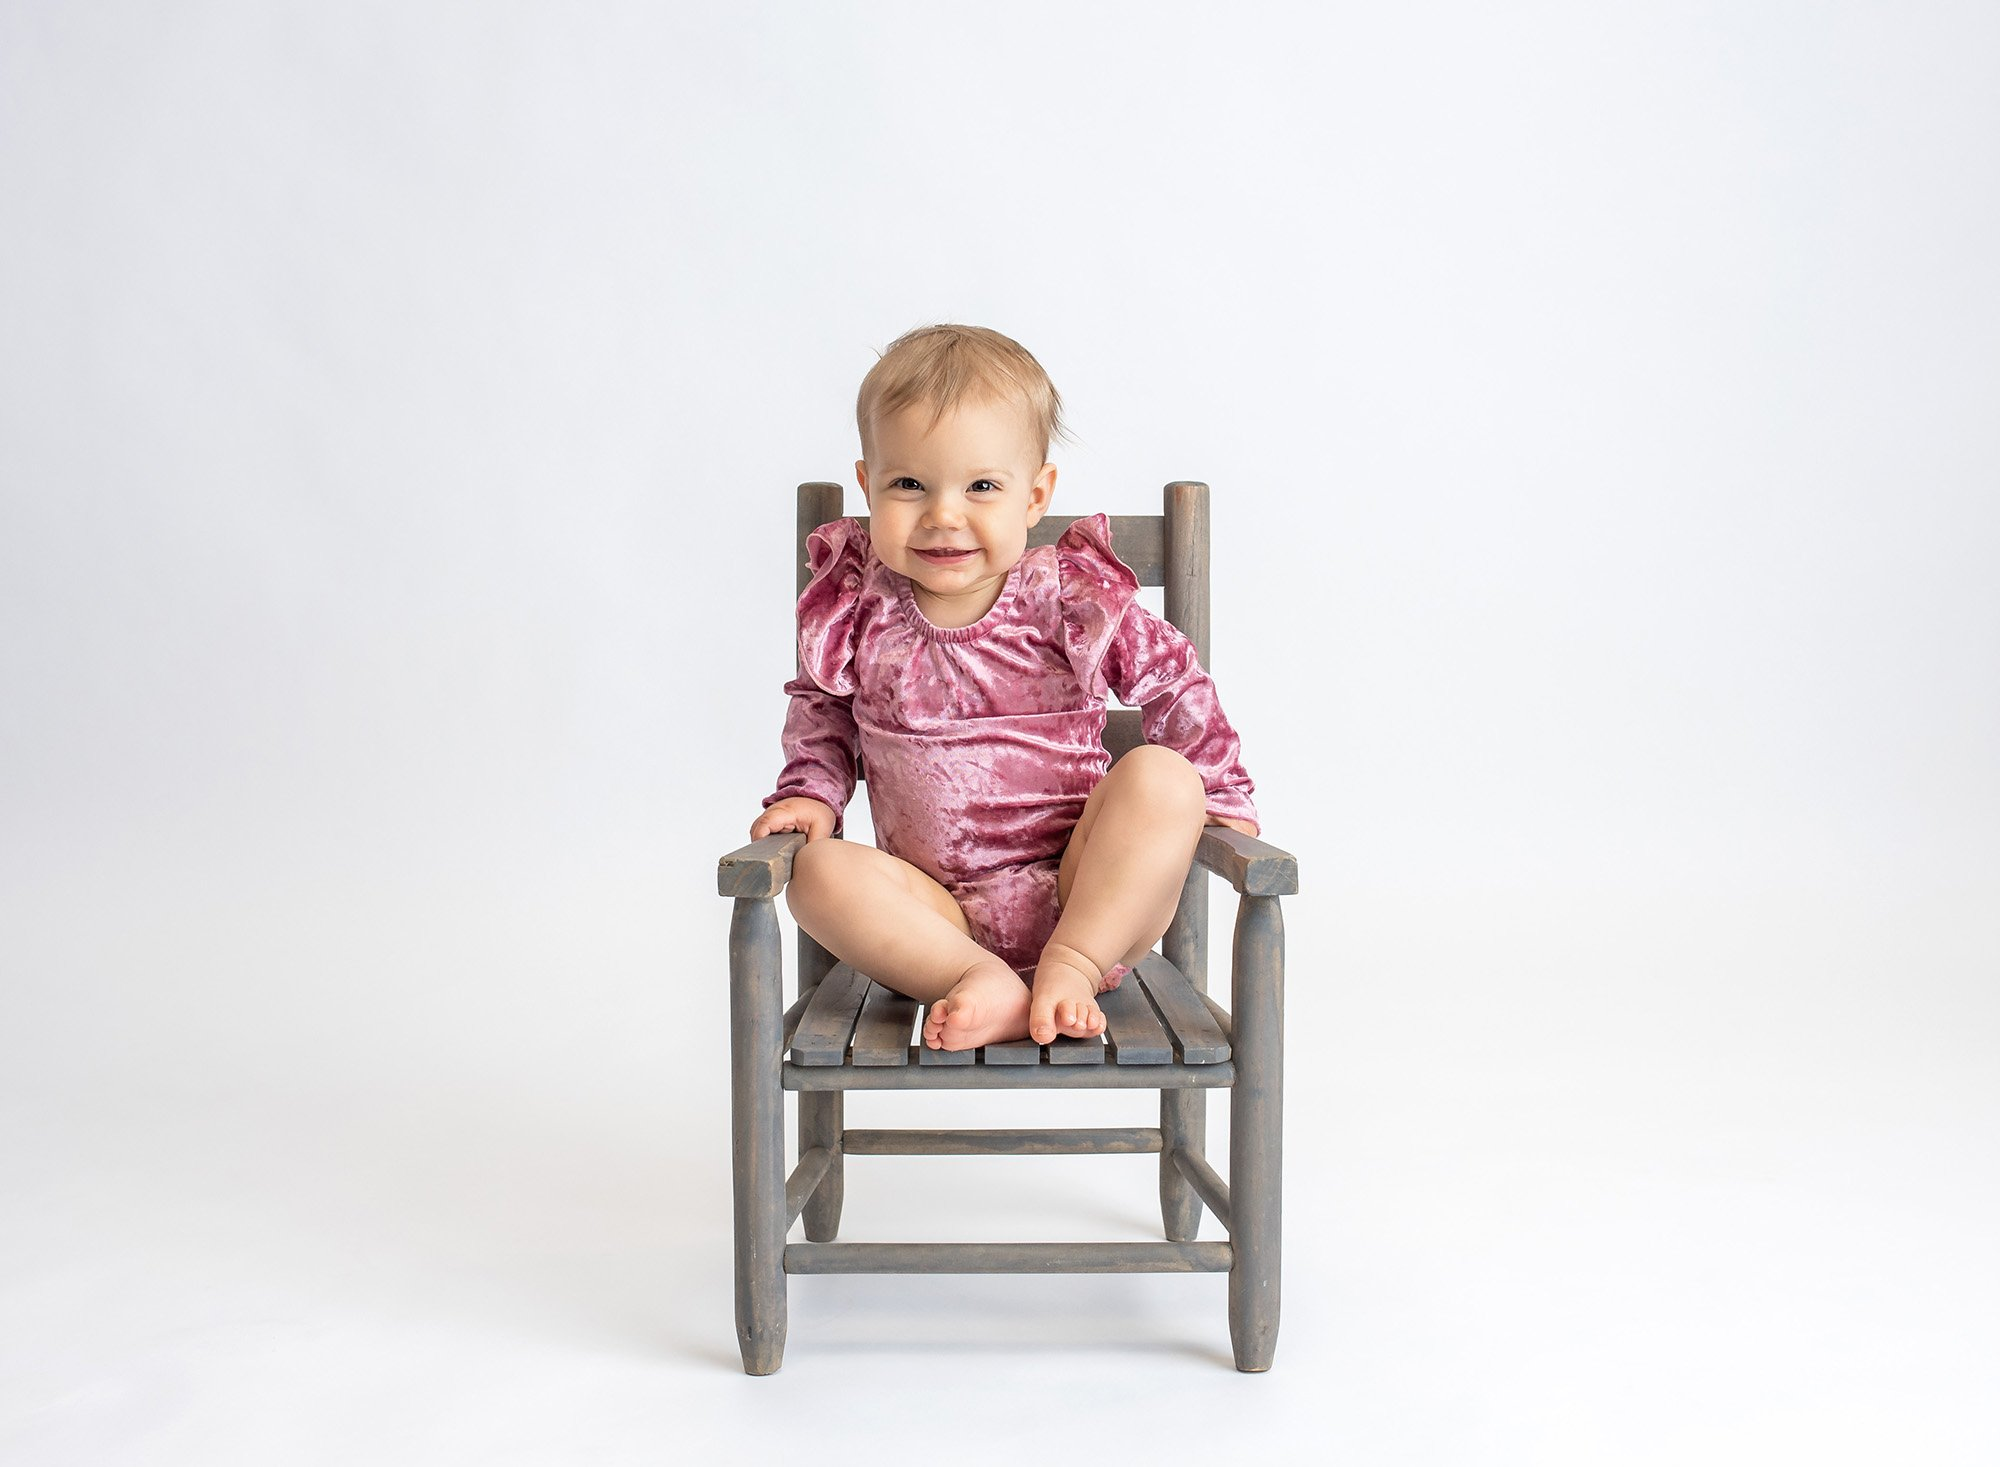 blonde one year old girl wearing pink velvet body suit sitting on rustic chair with white backdrop